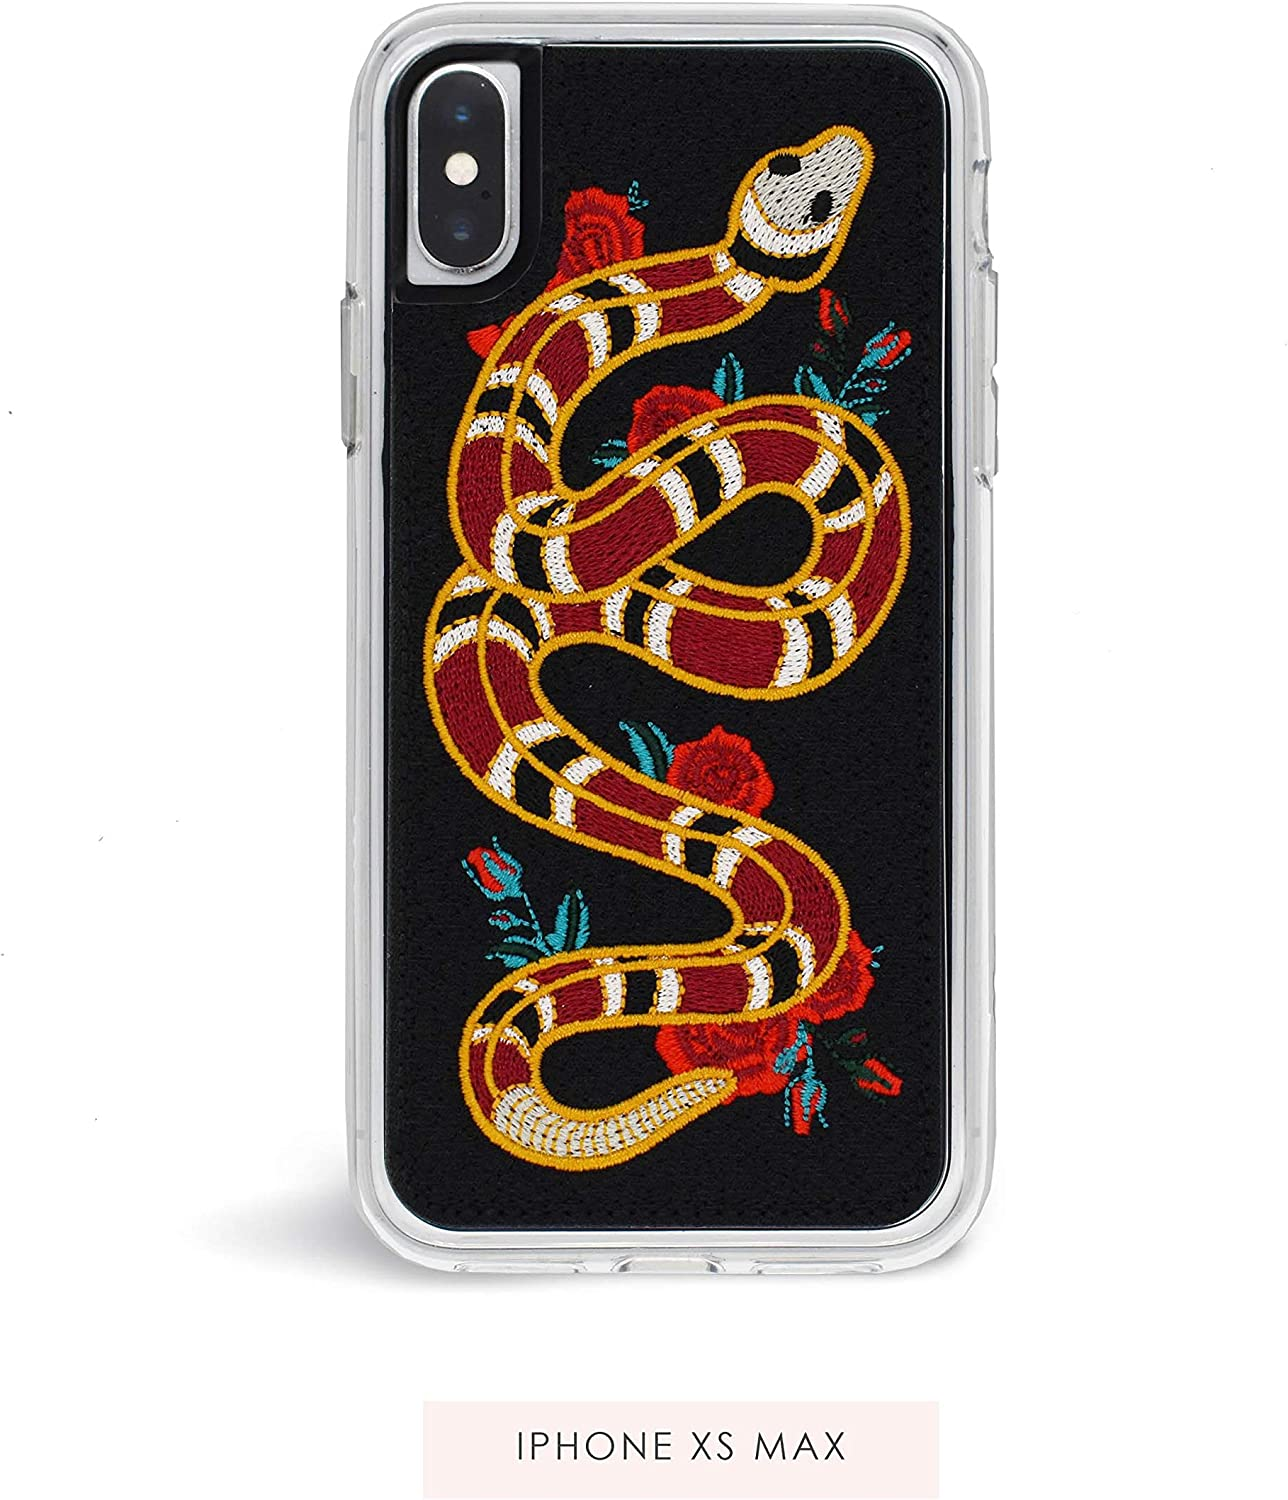 Zero Gravity Compatible with iPhone Xs Max Strike Phone Case - Embroidered Snake and Rose Design - 360° Protection, Drop Test Approved